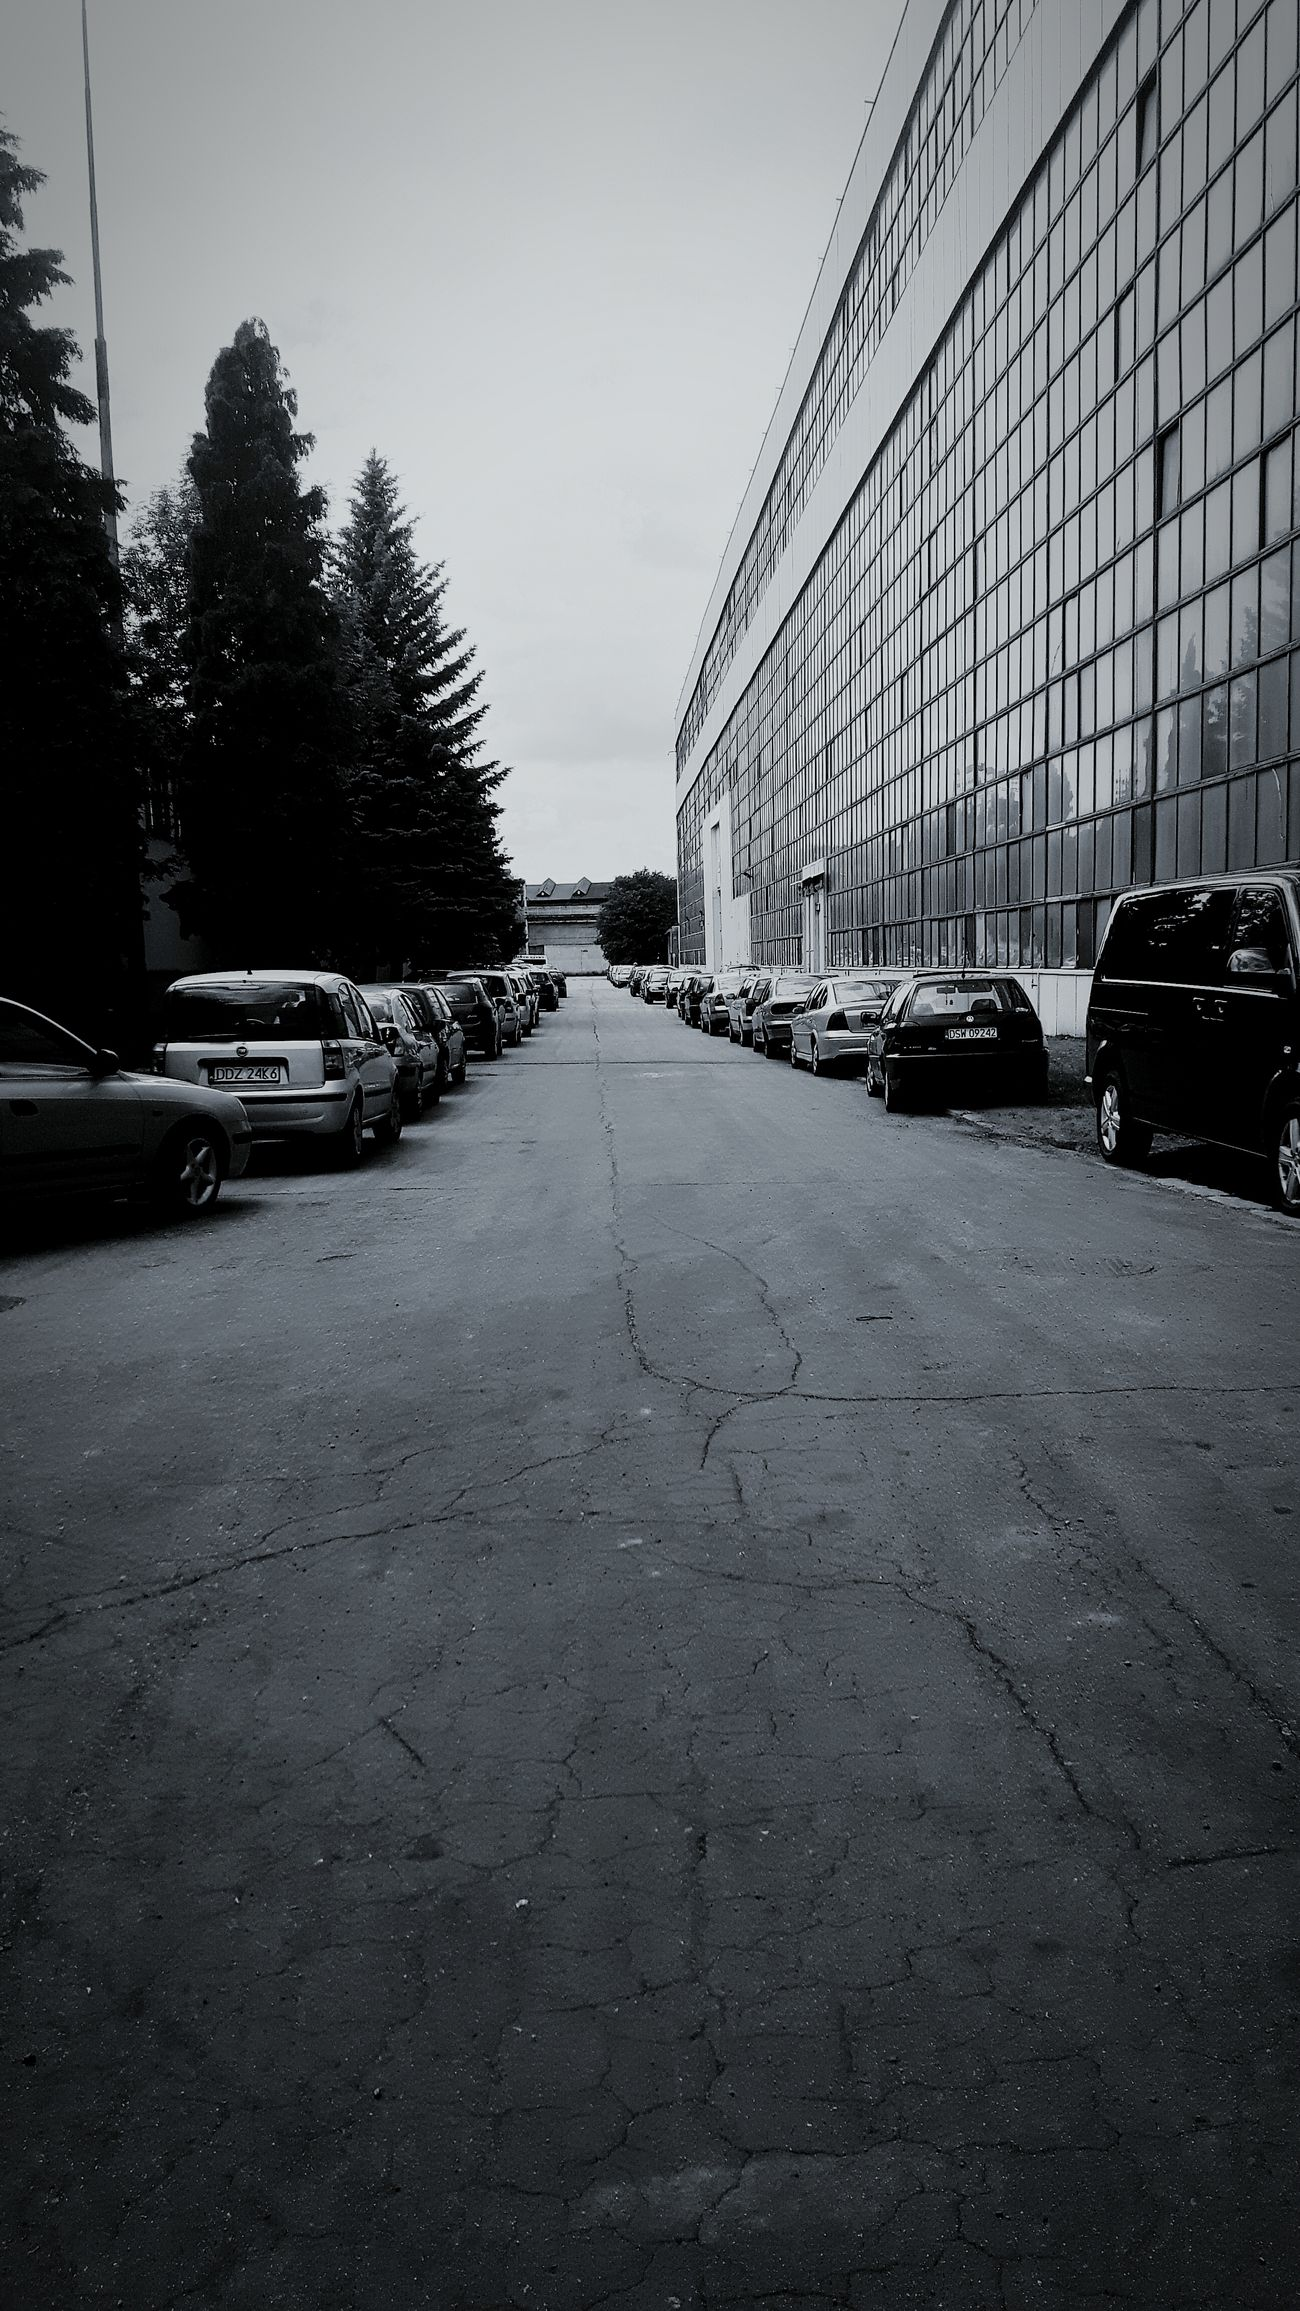 Alone Longway Trees Cars Road Greylife Cracks In The Road Poland Memories Mycity Sad Lonely Gloomy Factory Building Sky Photooftheday Photo Black White 2016 Noon Bestoftheday Need For Speed